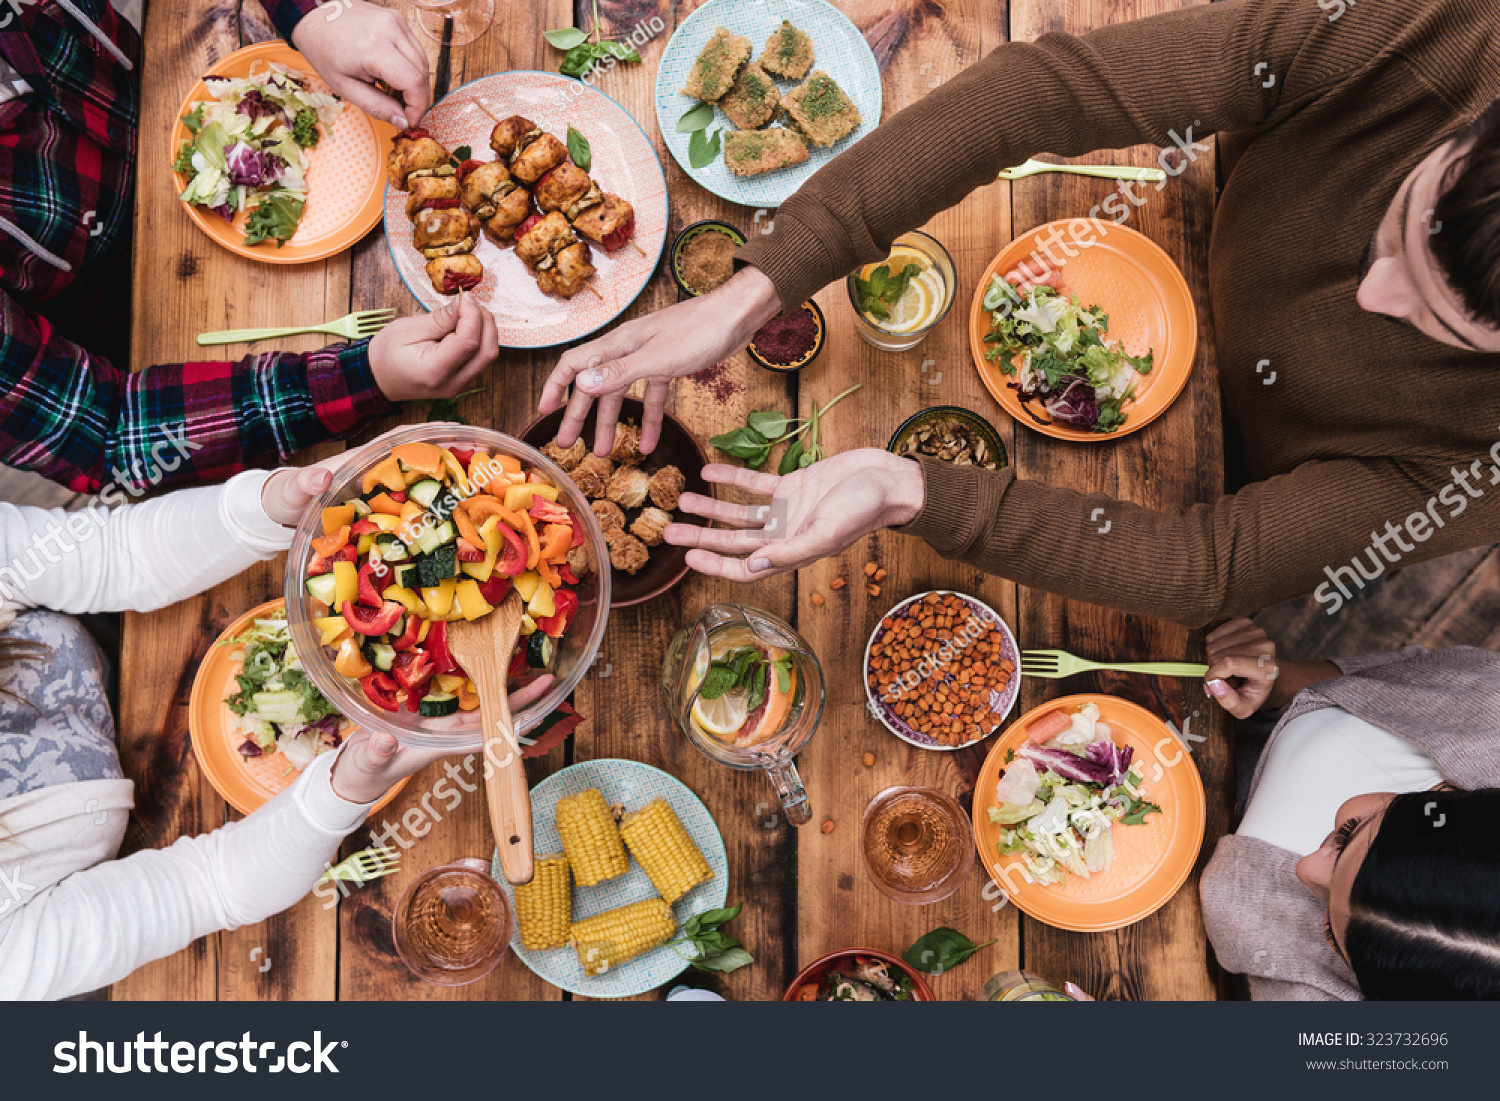 Friends Having Dinner Top View Four Stock Photo 323732696  : stock photo friends having dinner top view of four people having dinner together while sitting at the rustic 323732696 from www.shutterstock.com size 1500 x 1101 jpeg 970kB